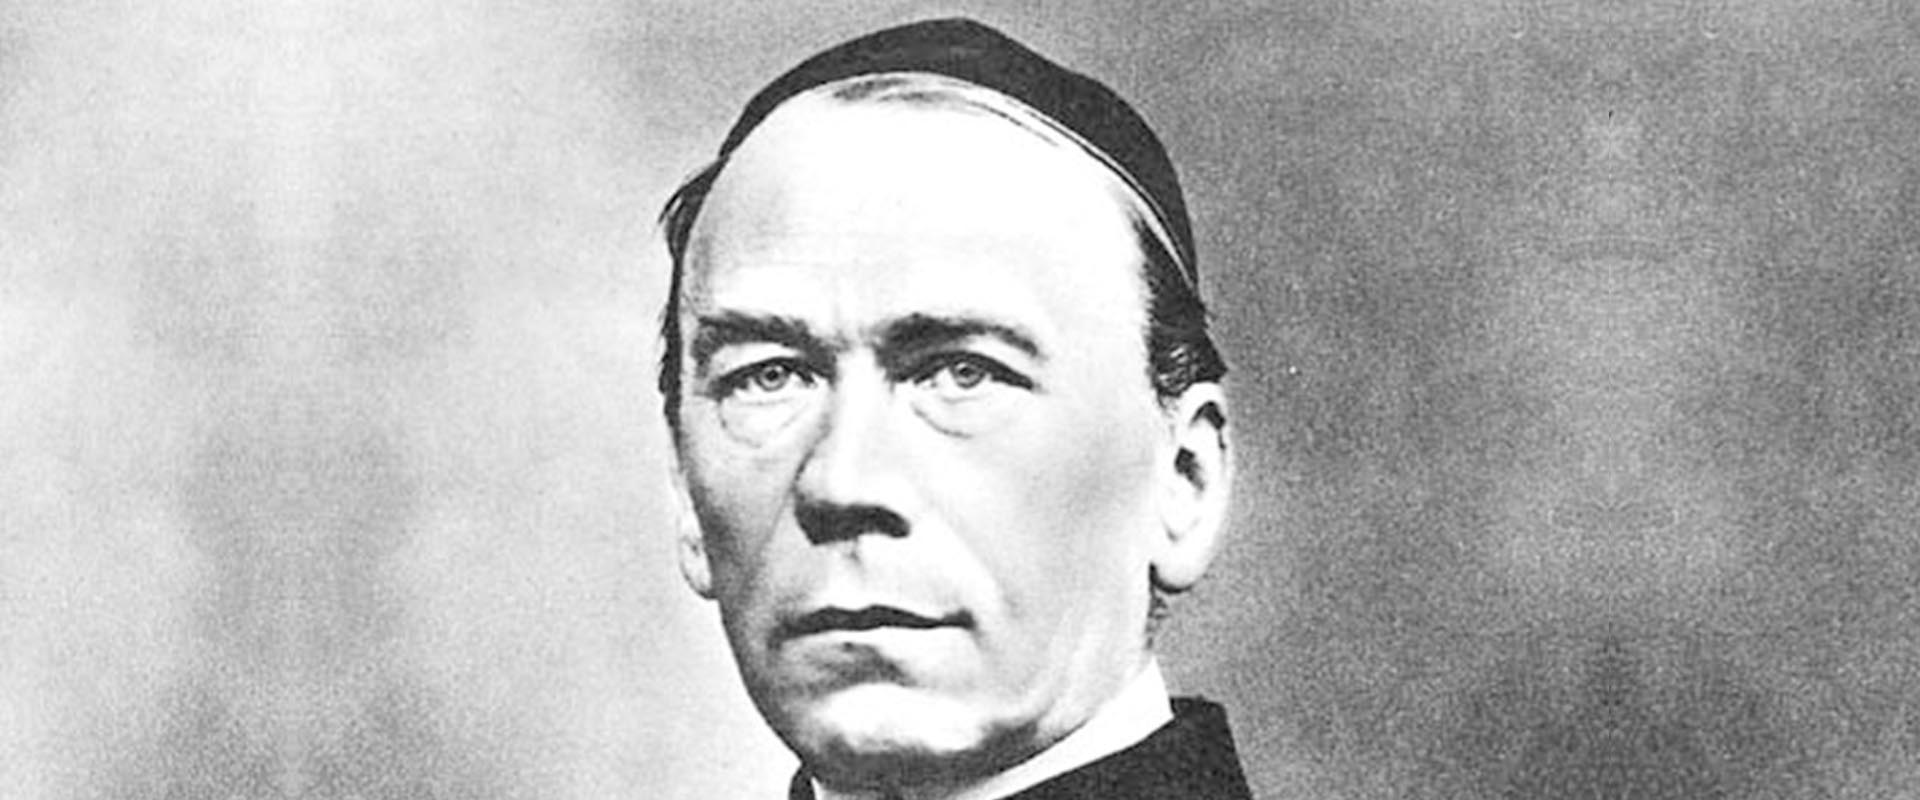 Saint of the Day for December 10 - Blessed Adolph Kolping